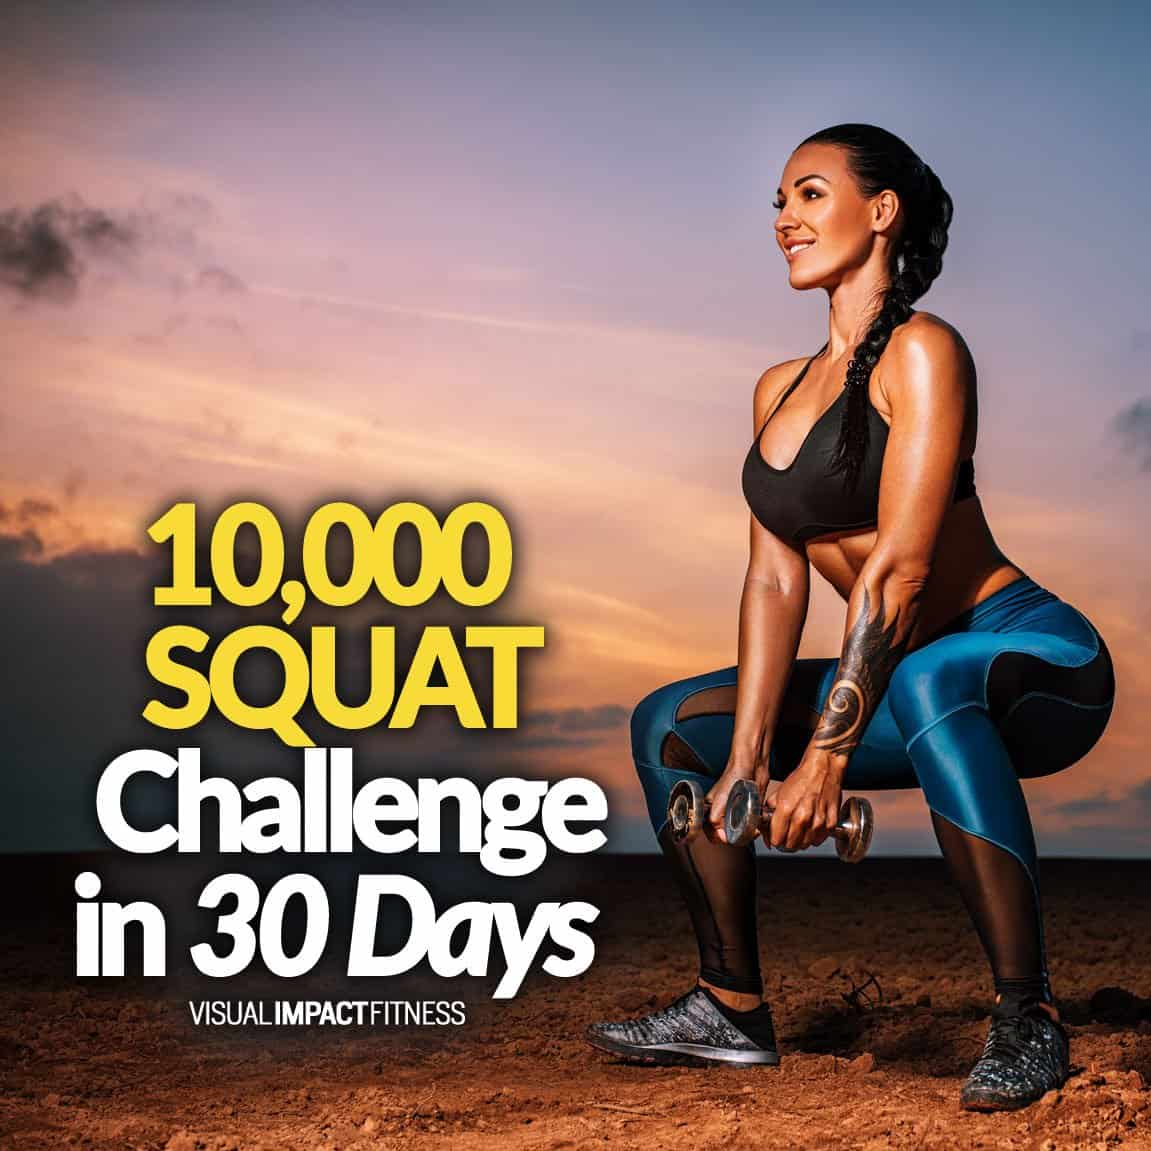 10,000 SQUAT Challenge in 30 Days